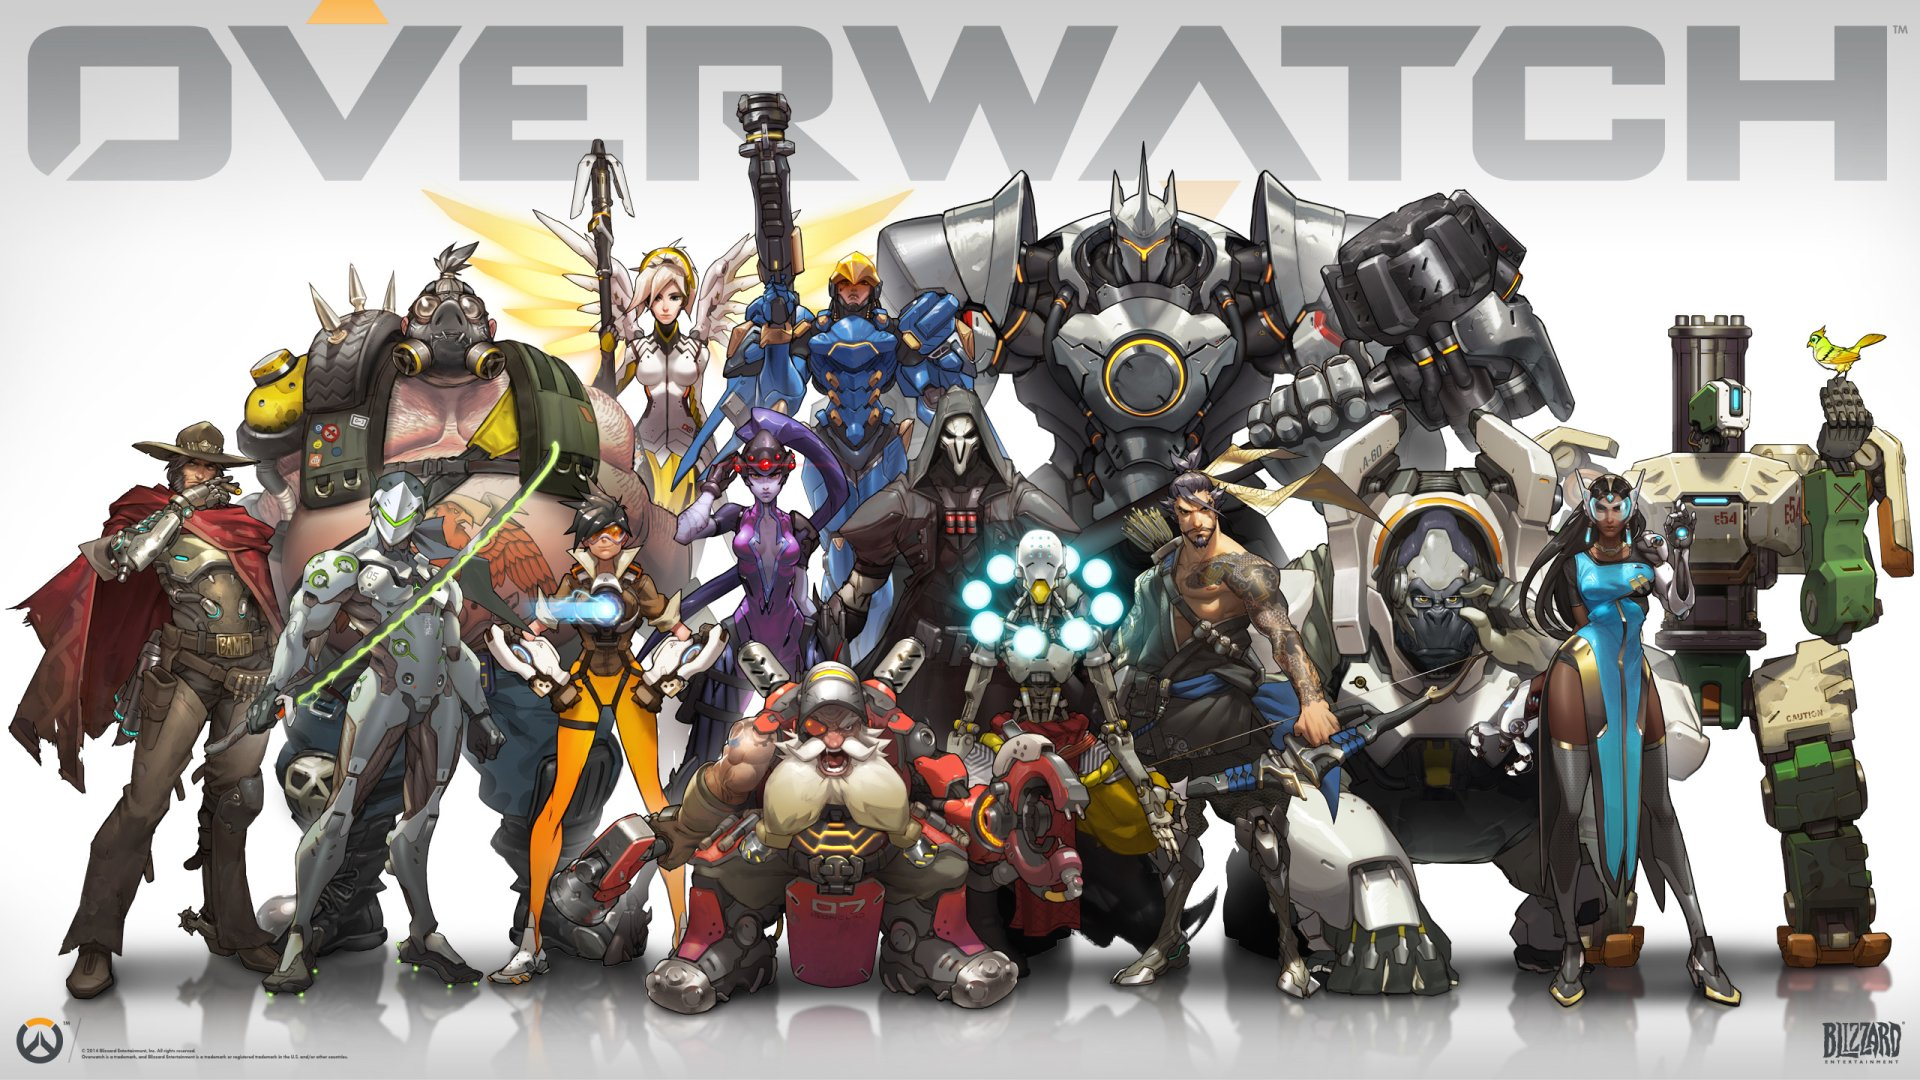 Video Game - Overwatch  Winston (Overwatch) Widowmaker (Overwatch) Reaper (Overwatch) Pharah (Overwatch) Hanzo (Overwatch) Zenyatta (Overwatch) Reinhardt (Overwatch) Torbjörn (Overwatch) Tracer (Overwatch) Bastion (Overwatch) Mercy (Overwatch) McCree (Overwatch) Genji (Overwatch) Roadhog (Overwatch) Symmetra (Overwatch) Wallpaper